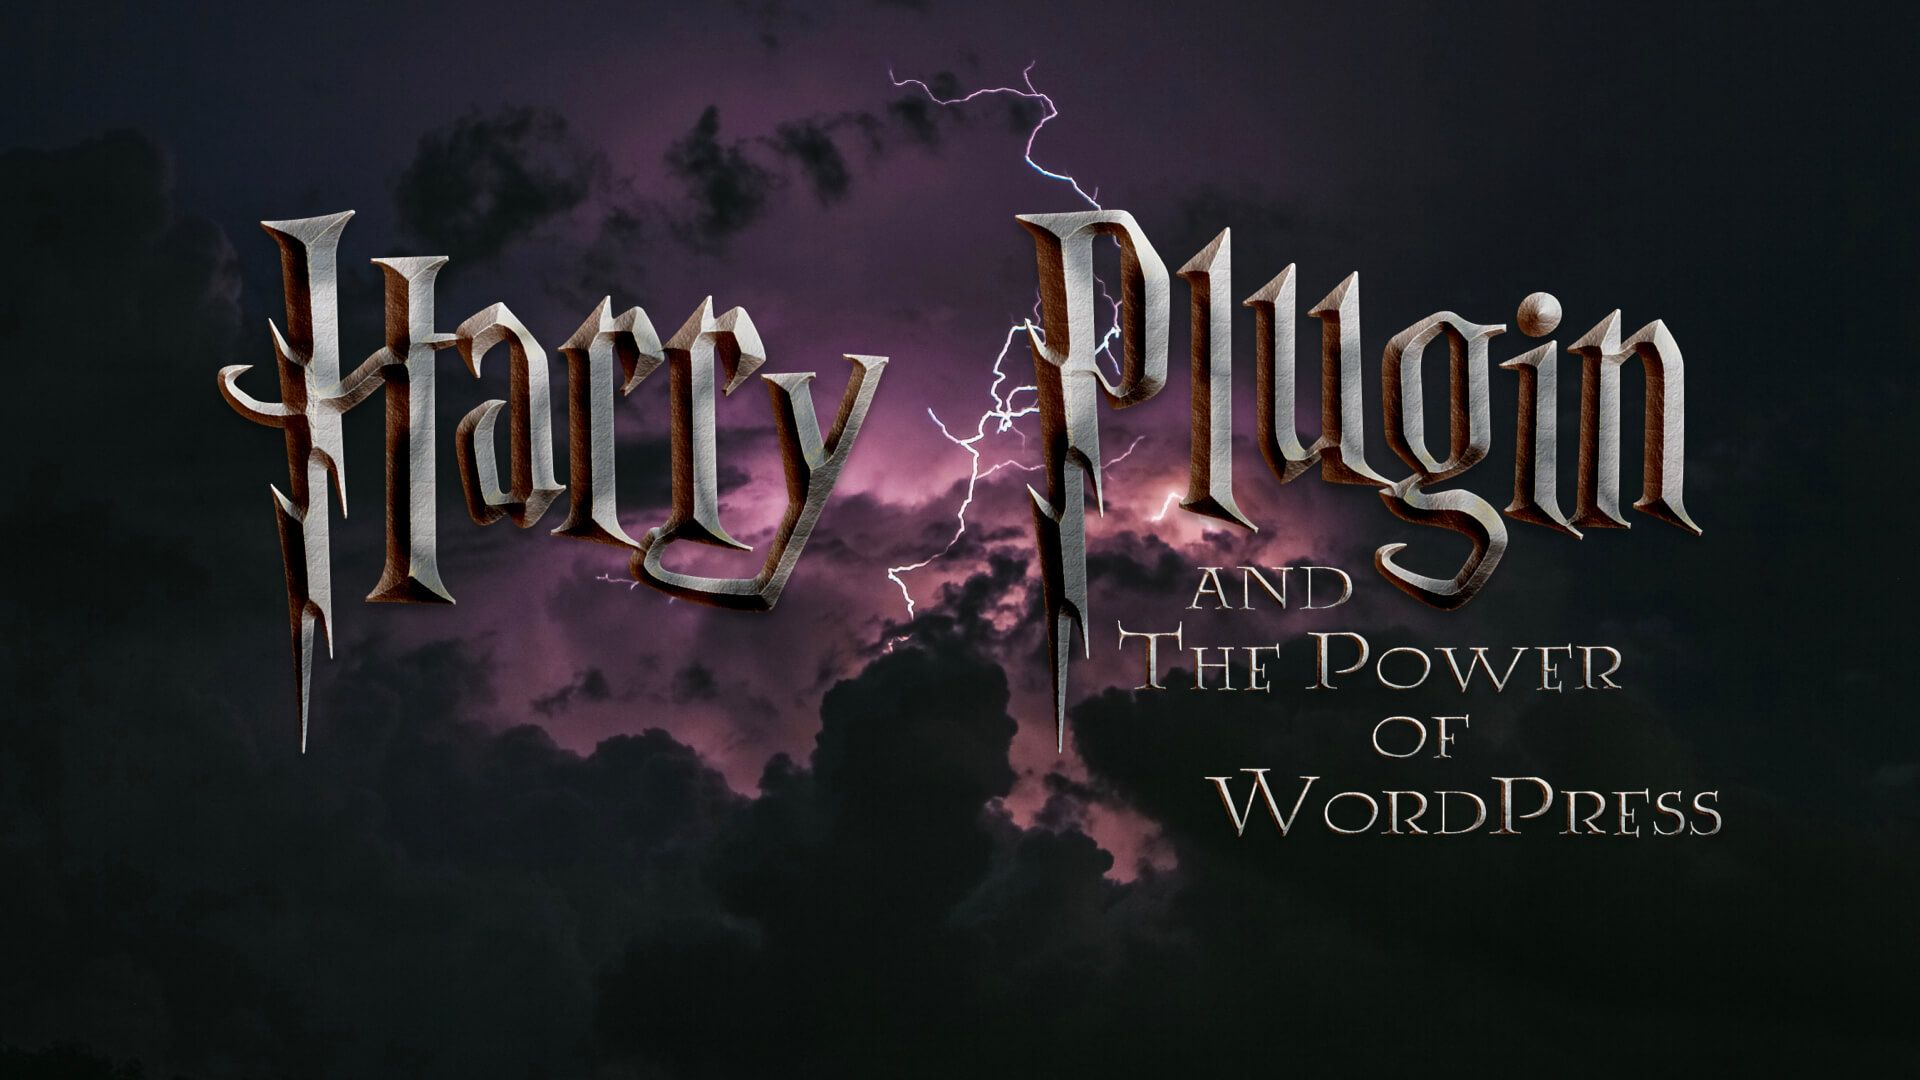 """Harry Plugin & The Power of WordPress"" written in the style of Harry Potter"